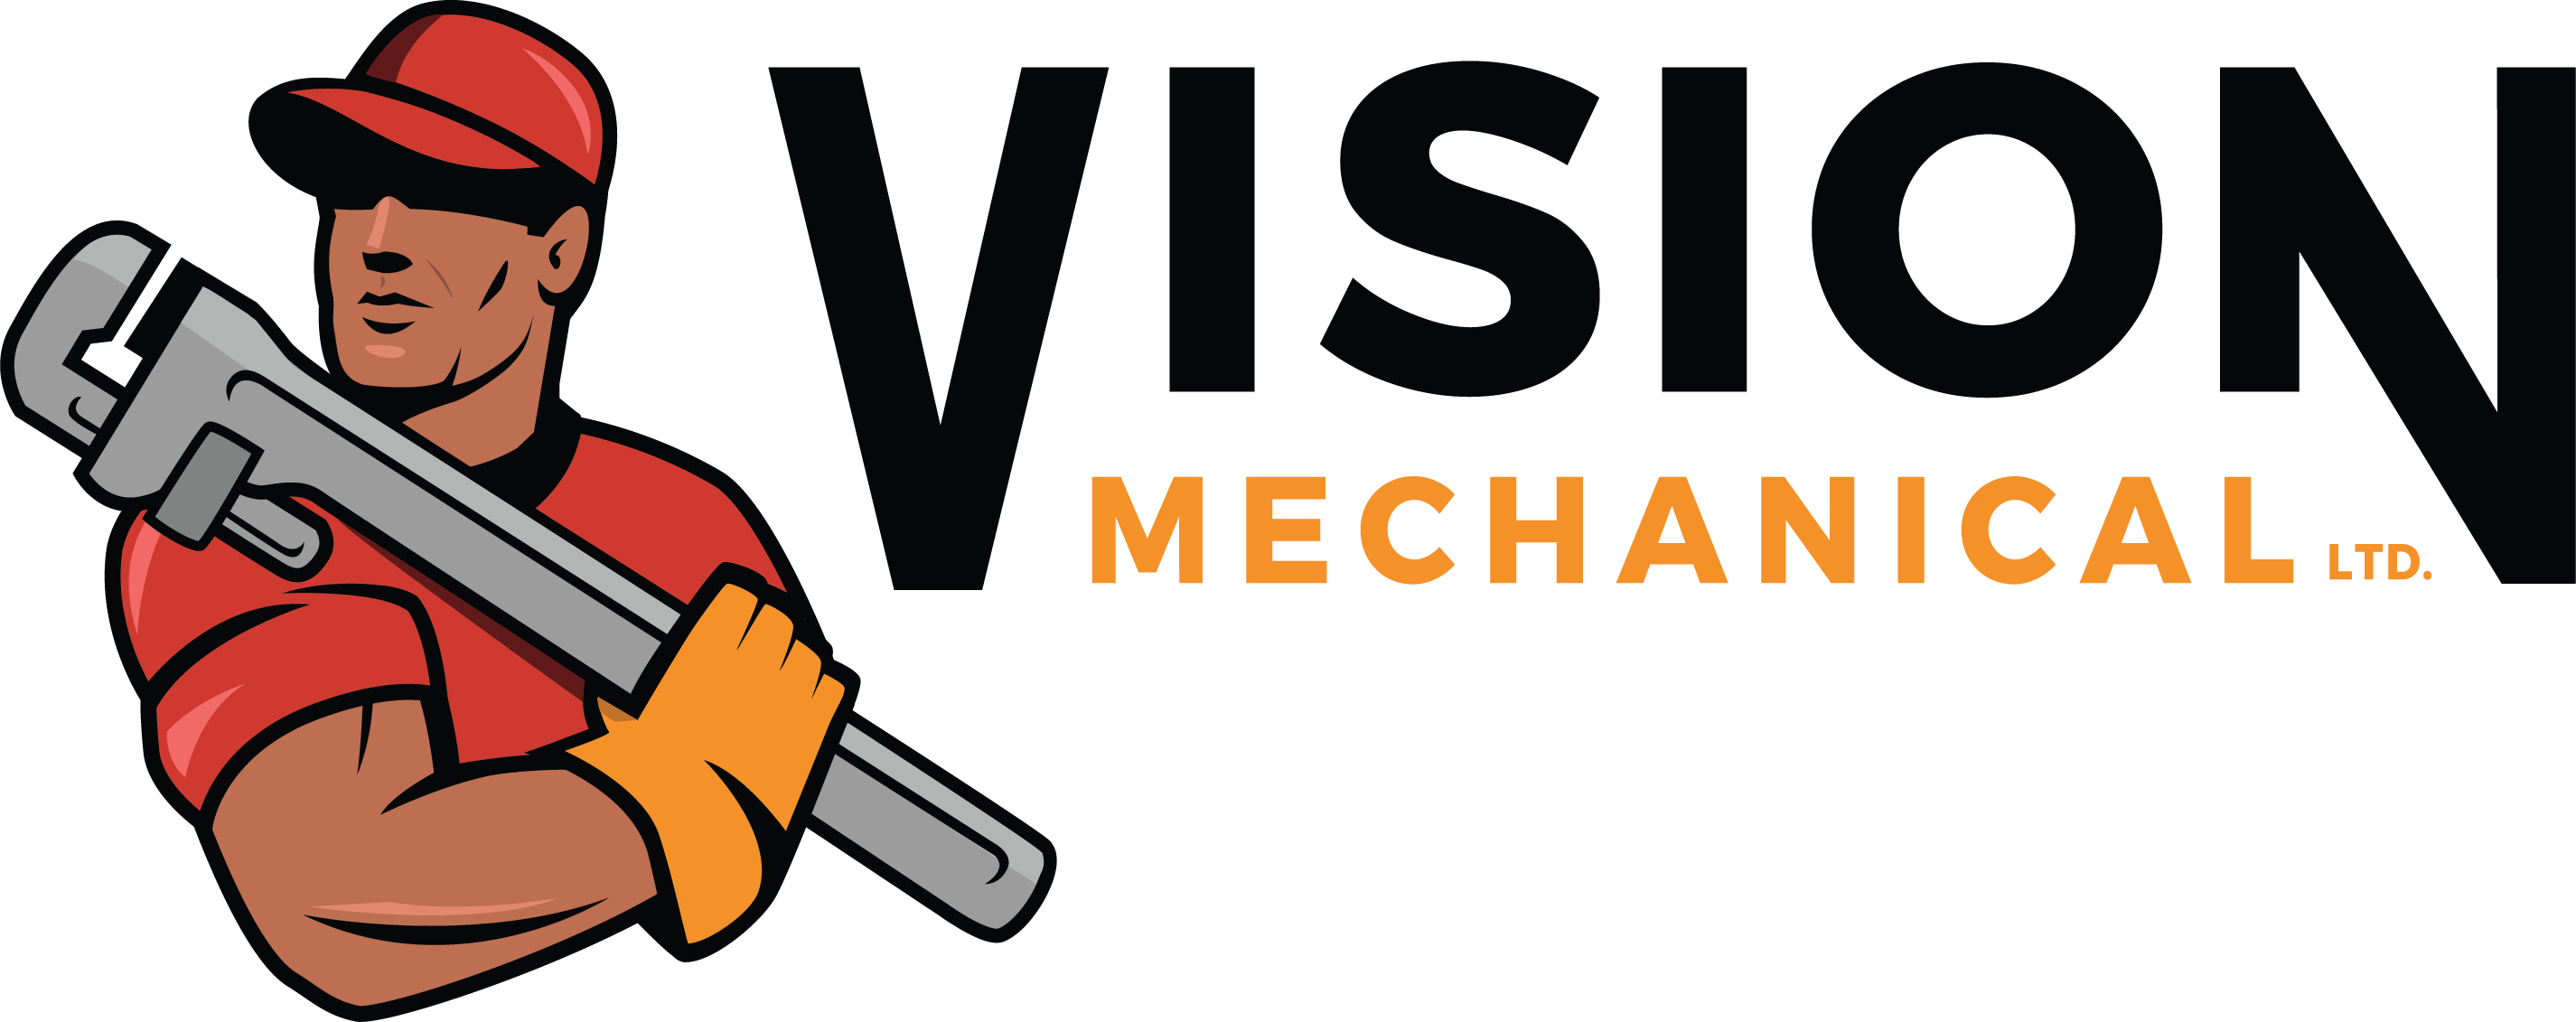 Vision Mechanical Ltd